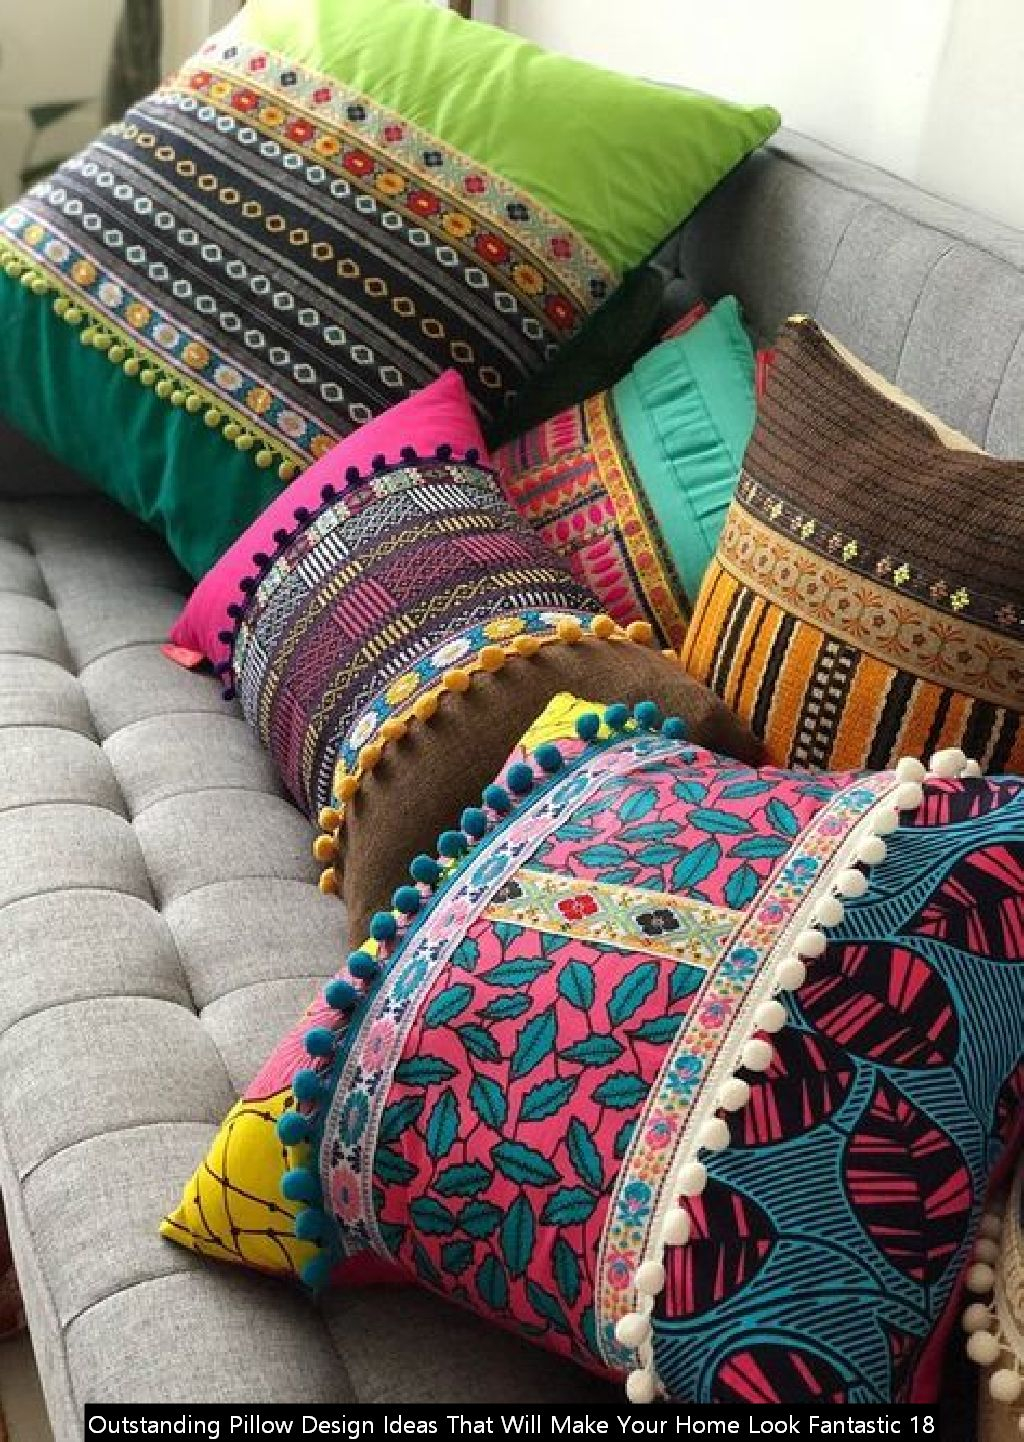 Outstanding Pillow Design Ideas That Will Make Your Home Look Fantastic 18